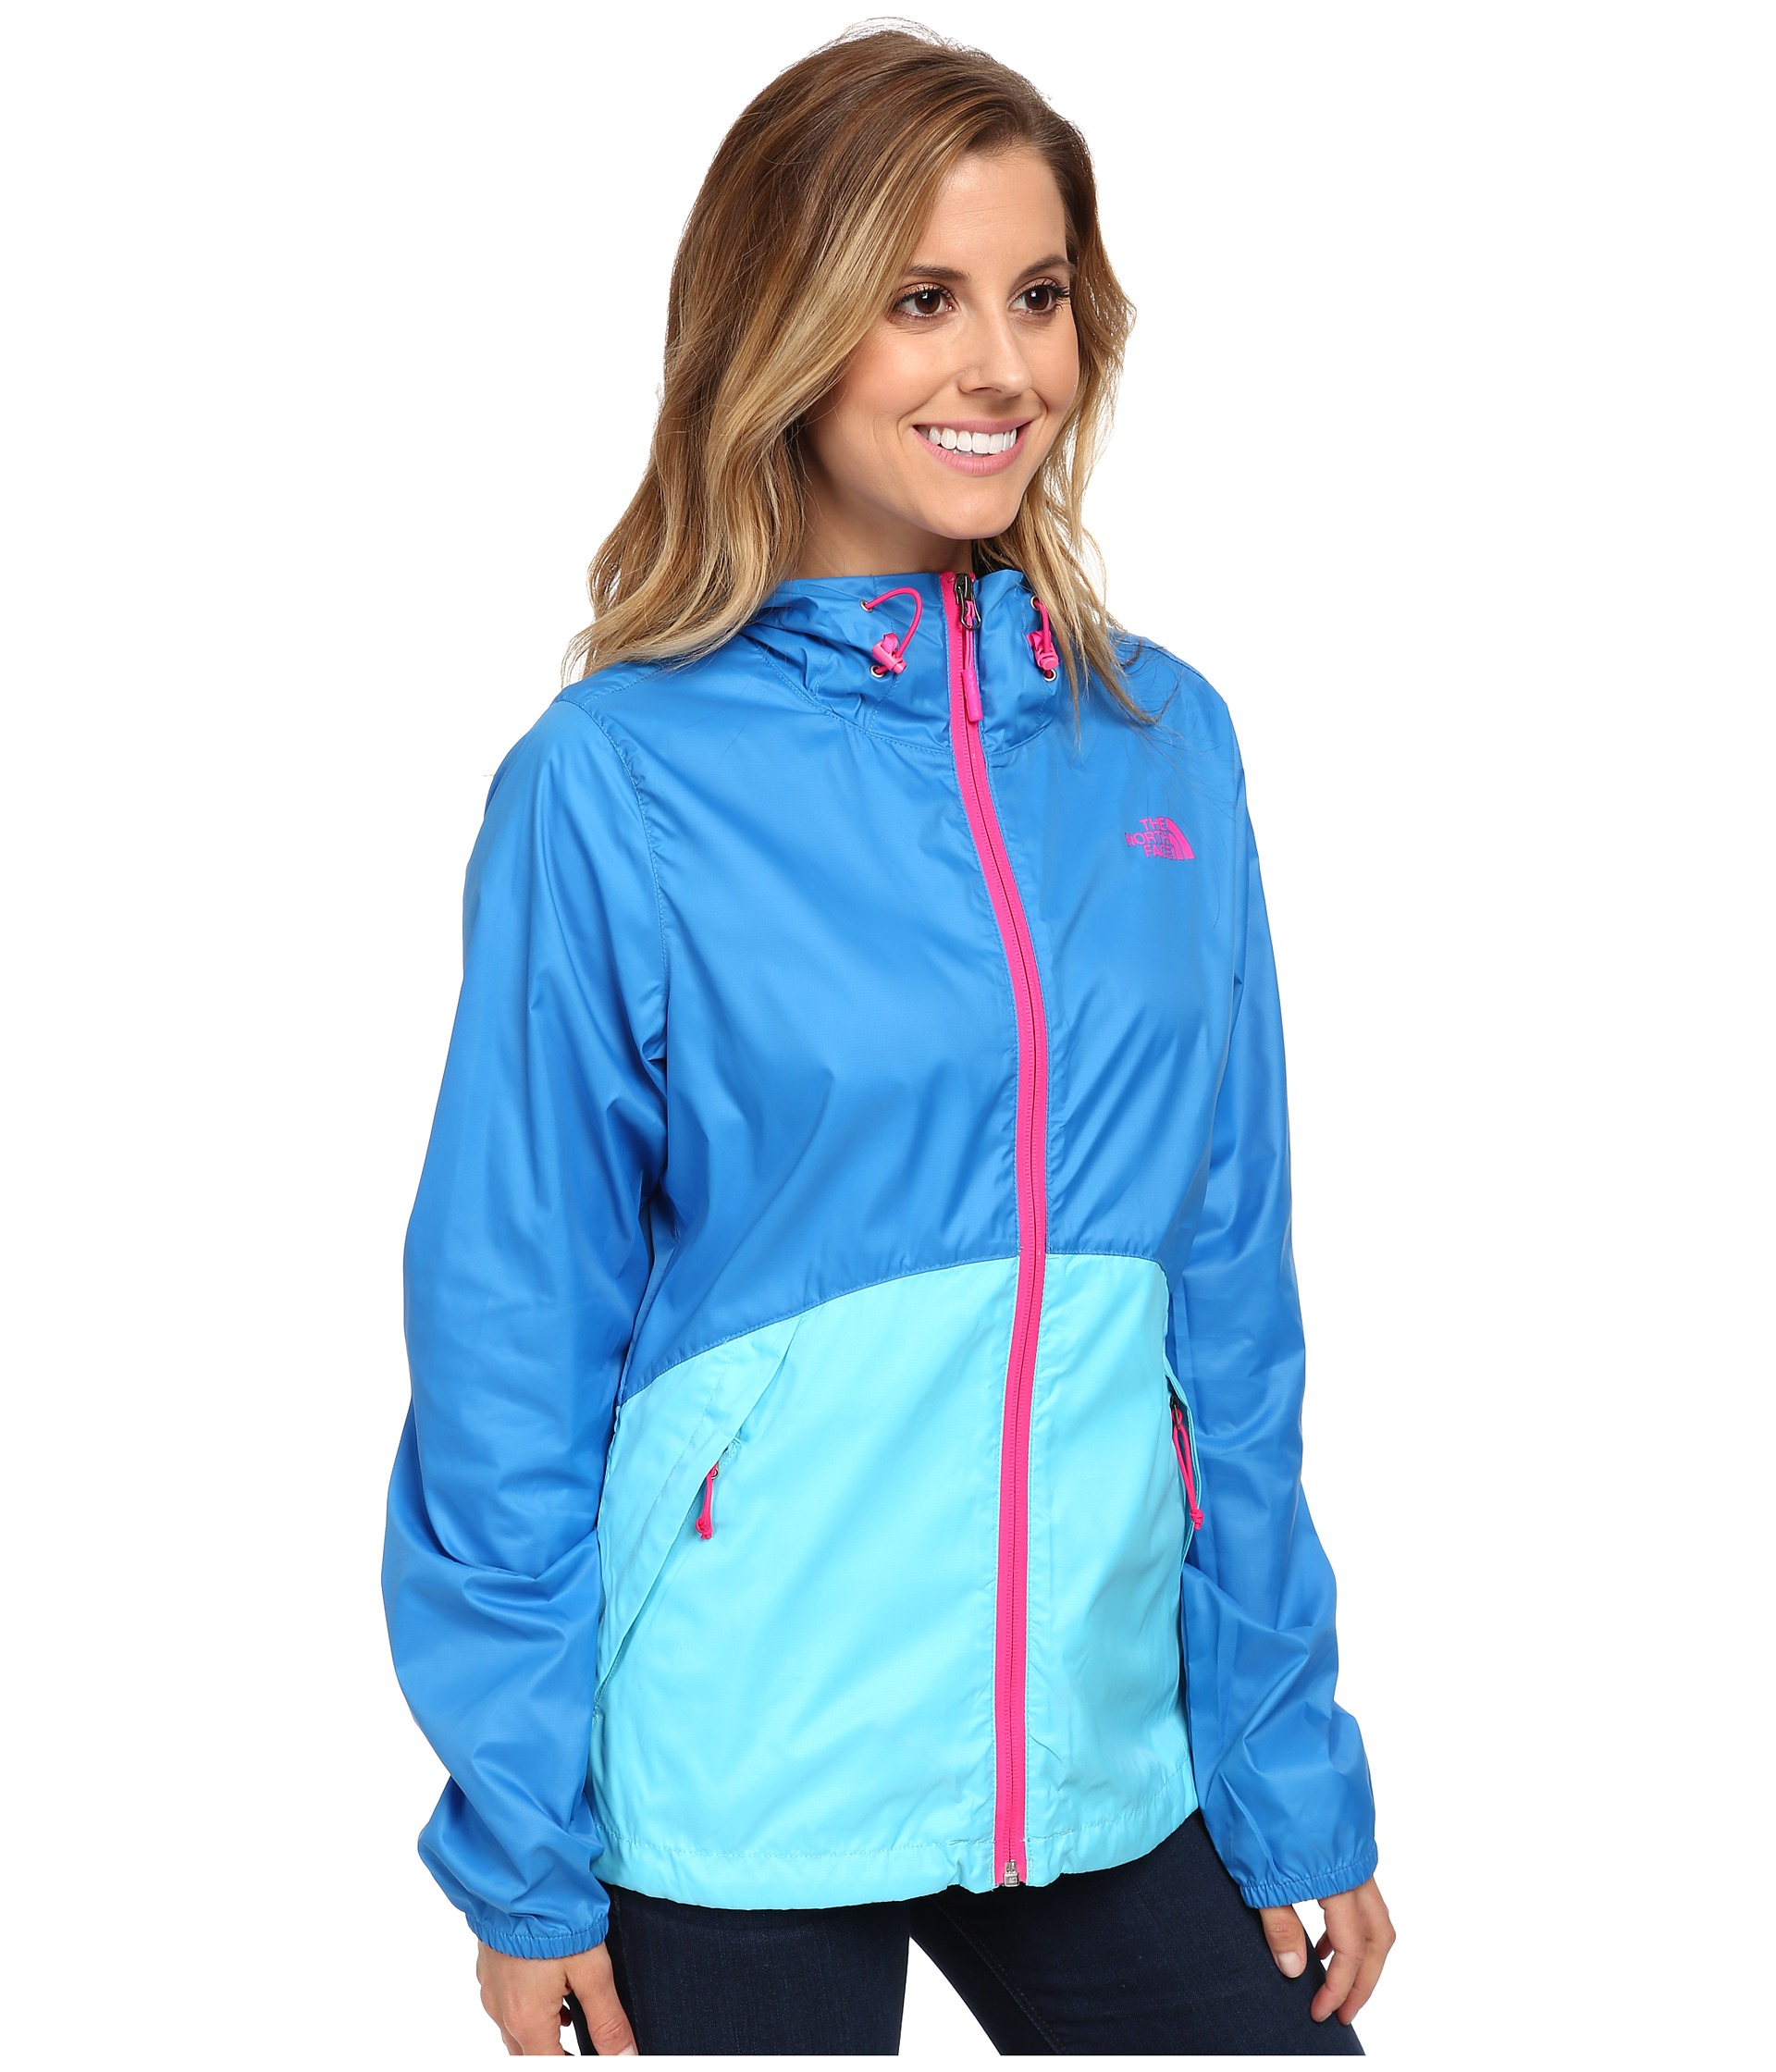 ... release date lyst the north face flyweight hoodie in blue 60d45 48ff5 56240886f